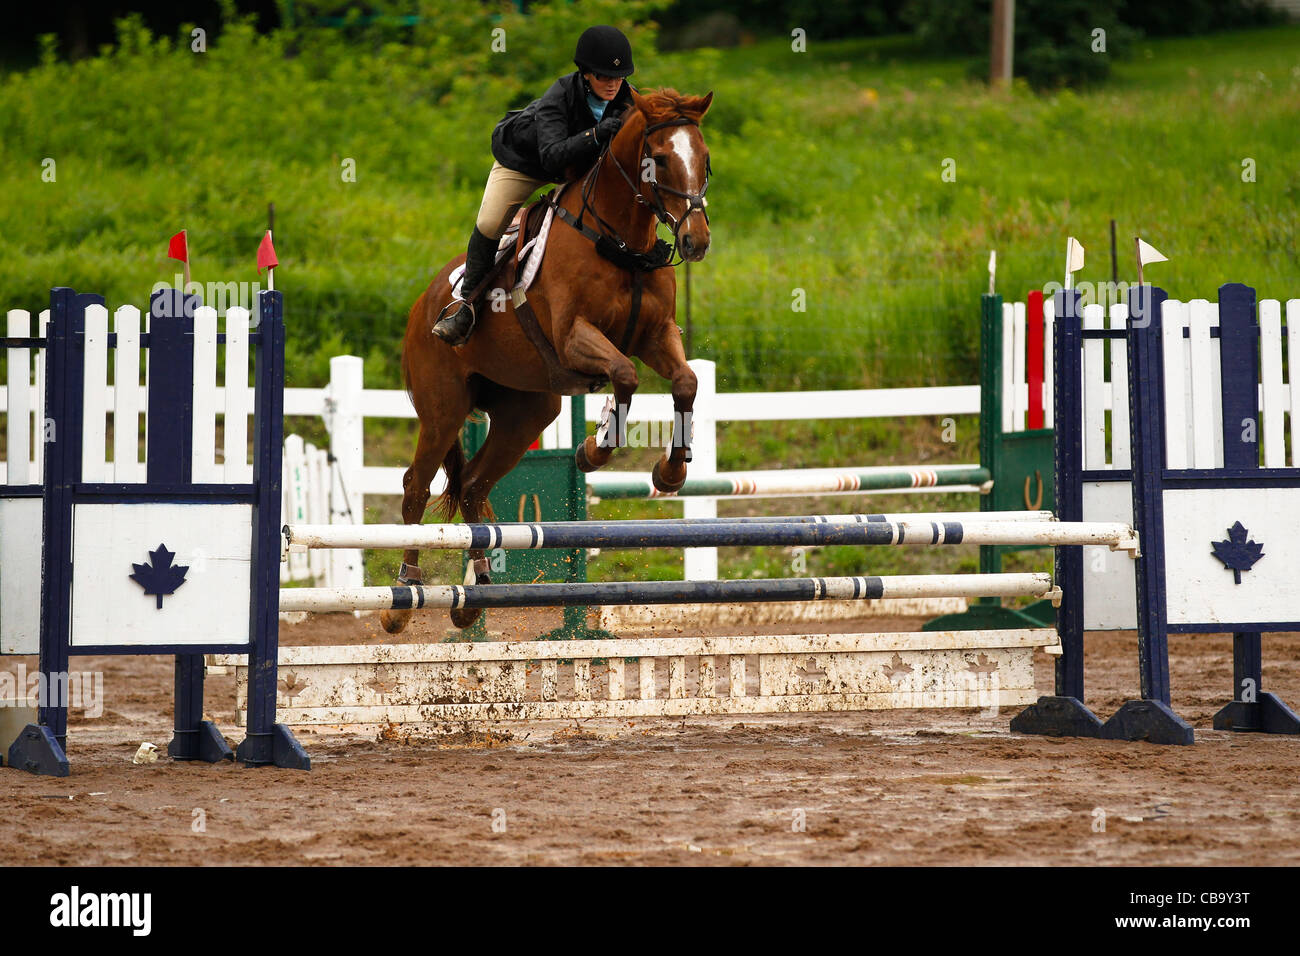 Chestnut Horse Jumping Fence Stock Photo Alamy